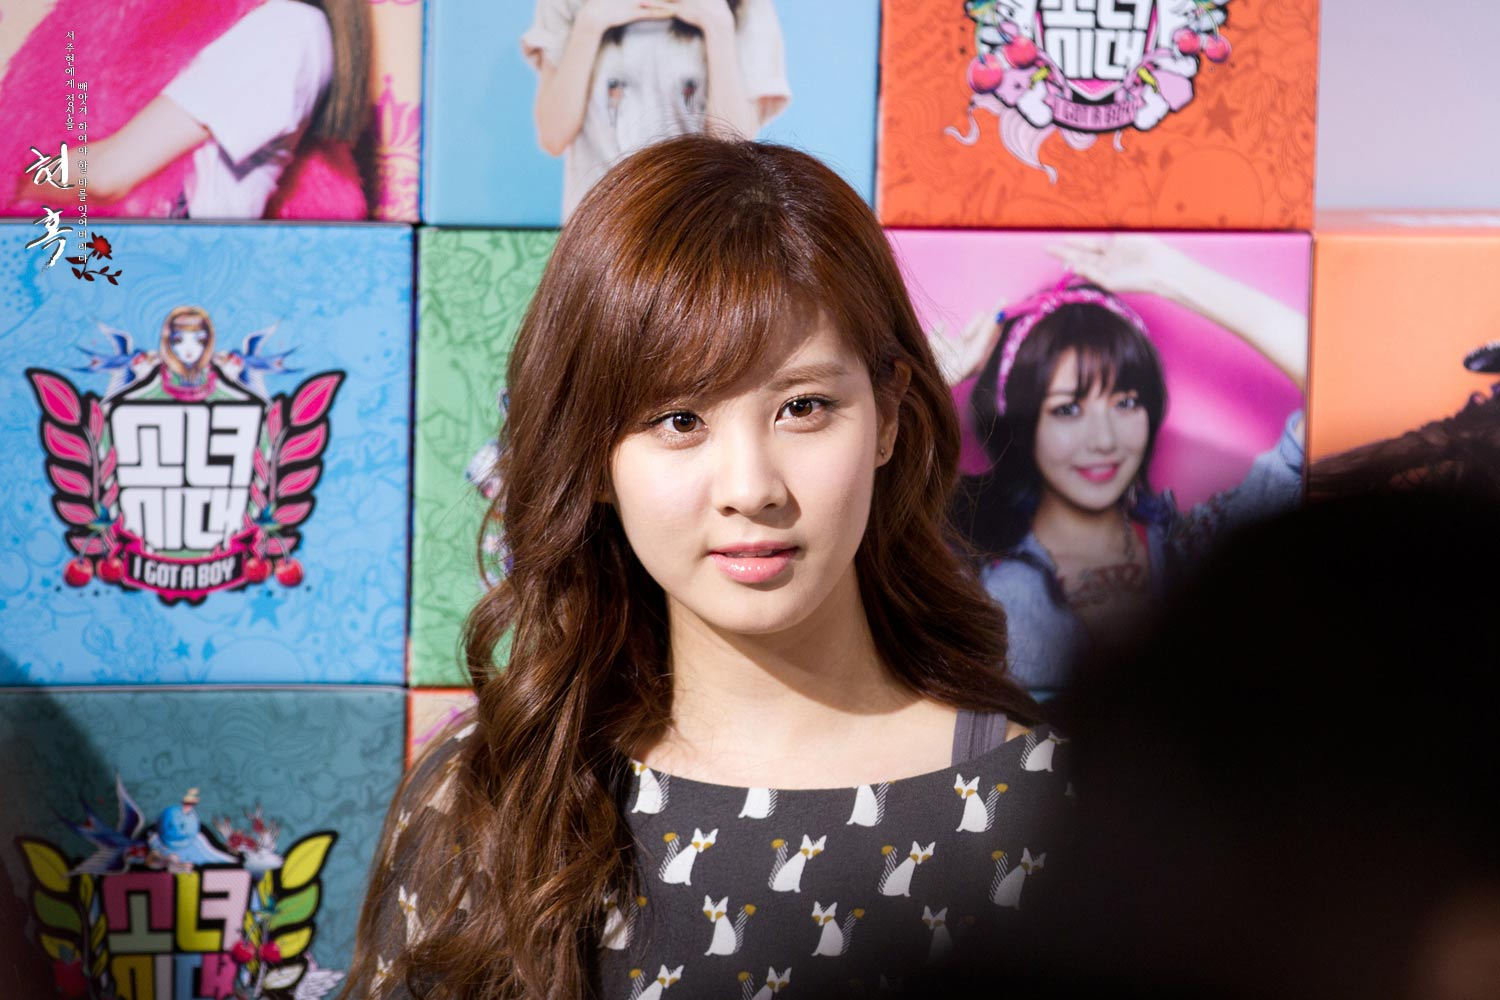 Snsd Seohyun Lotte pop up store